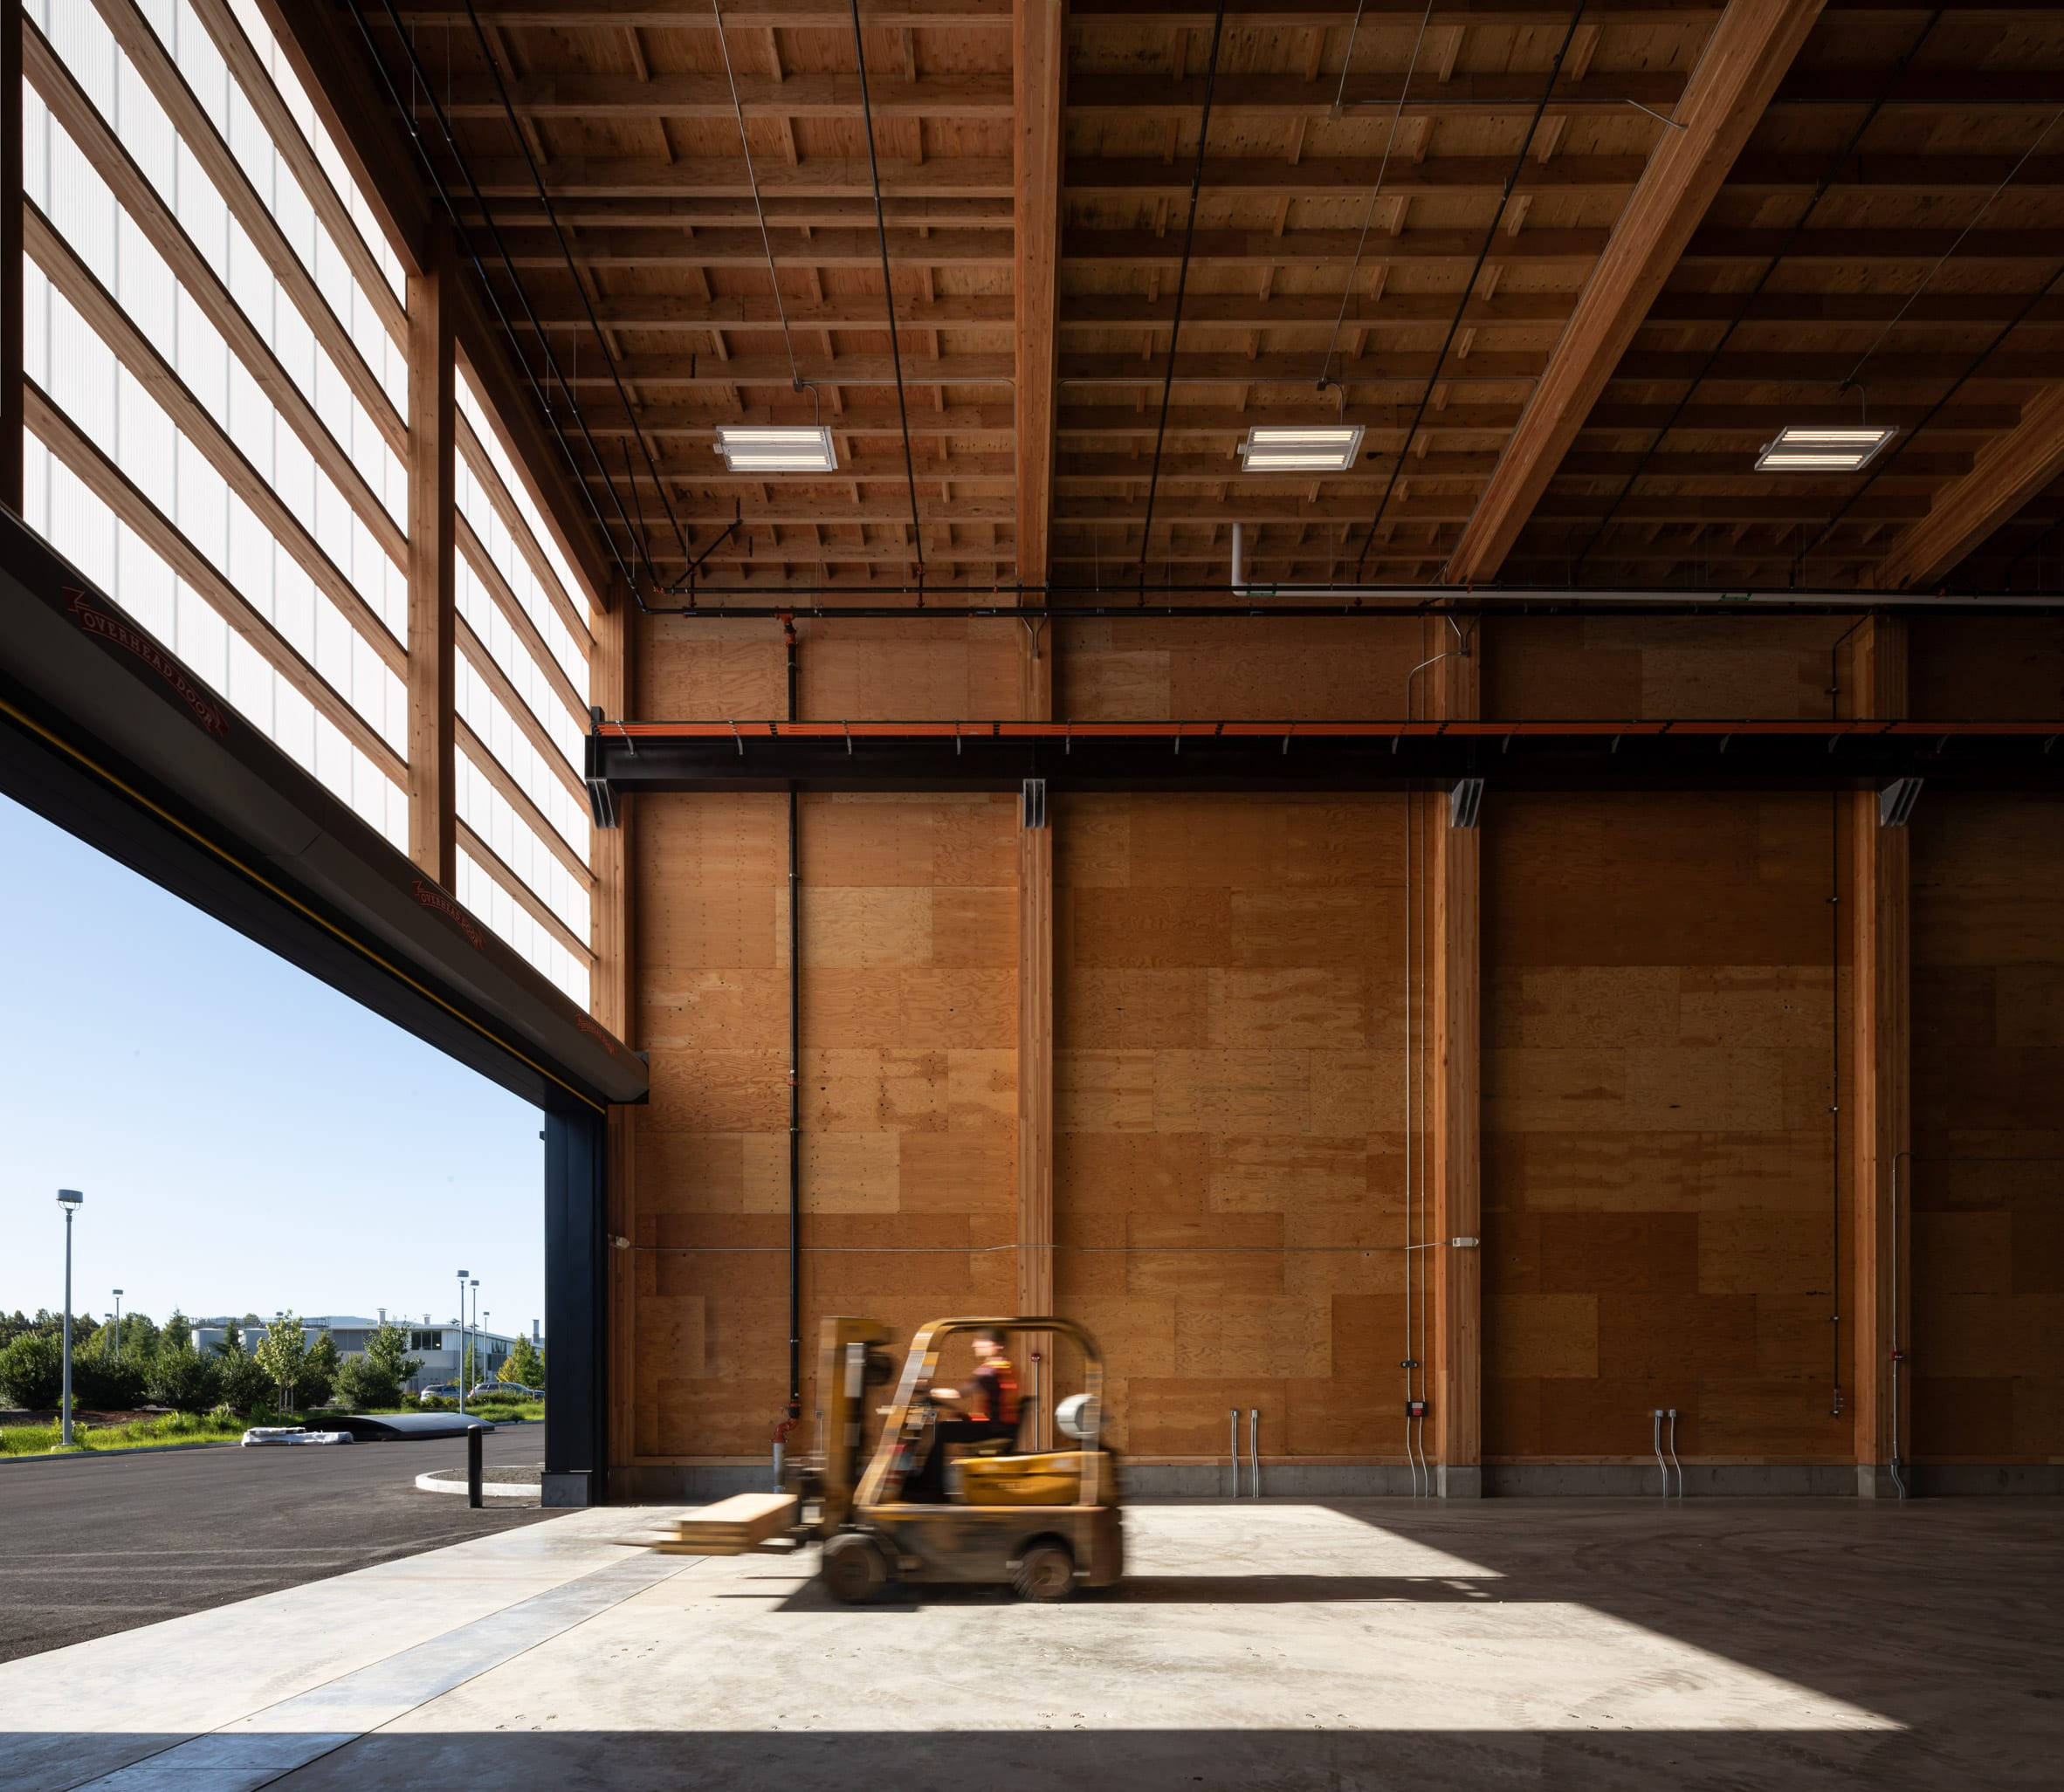 Inside, the building has expansive areas for developing and testing wood products